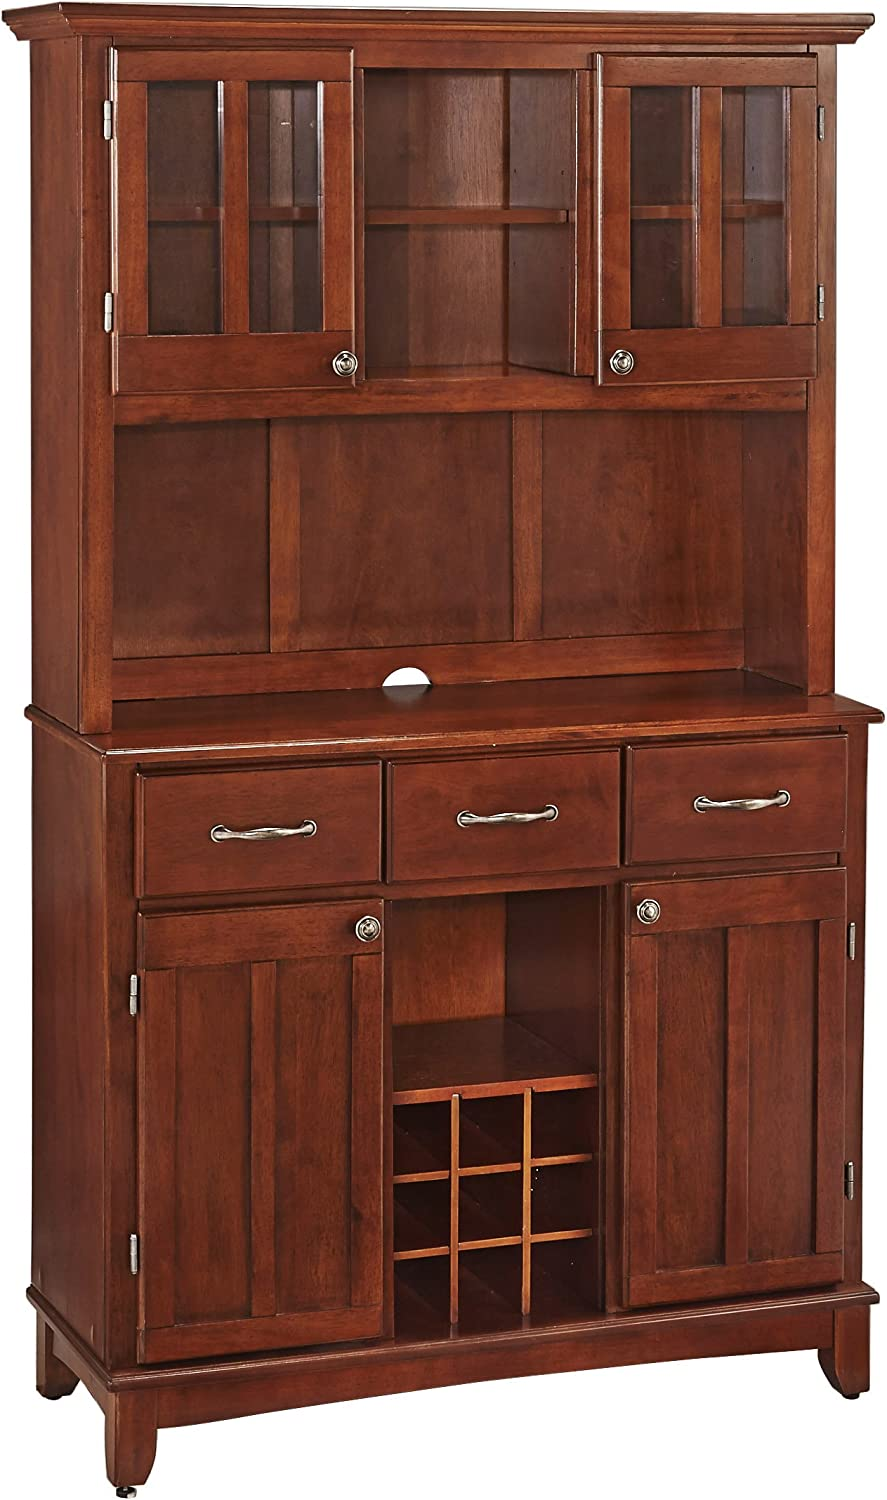 Home Styles 5100-0072-72 Buffet of BuffetsMedium Cherry Wood with Hutch, Cherry Finish, 41-3/4-Inch